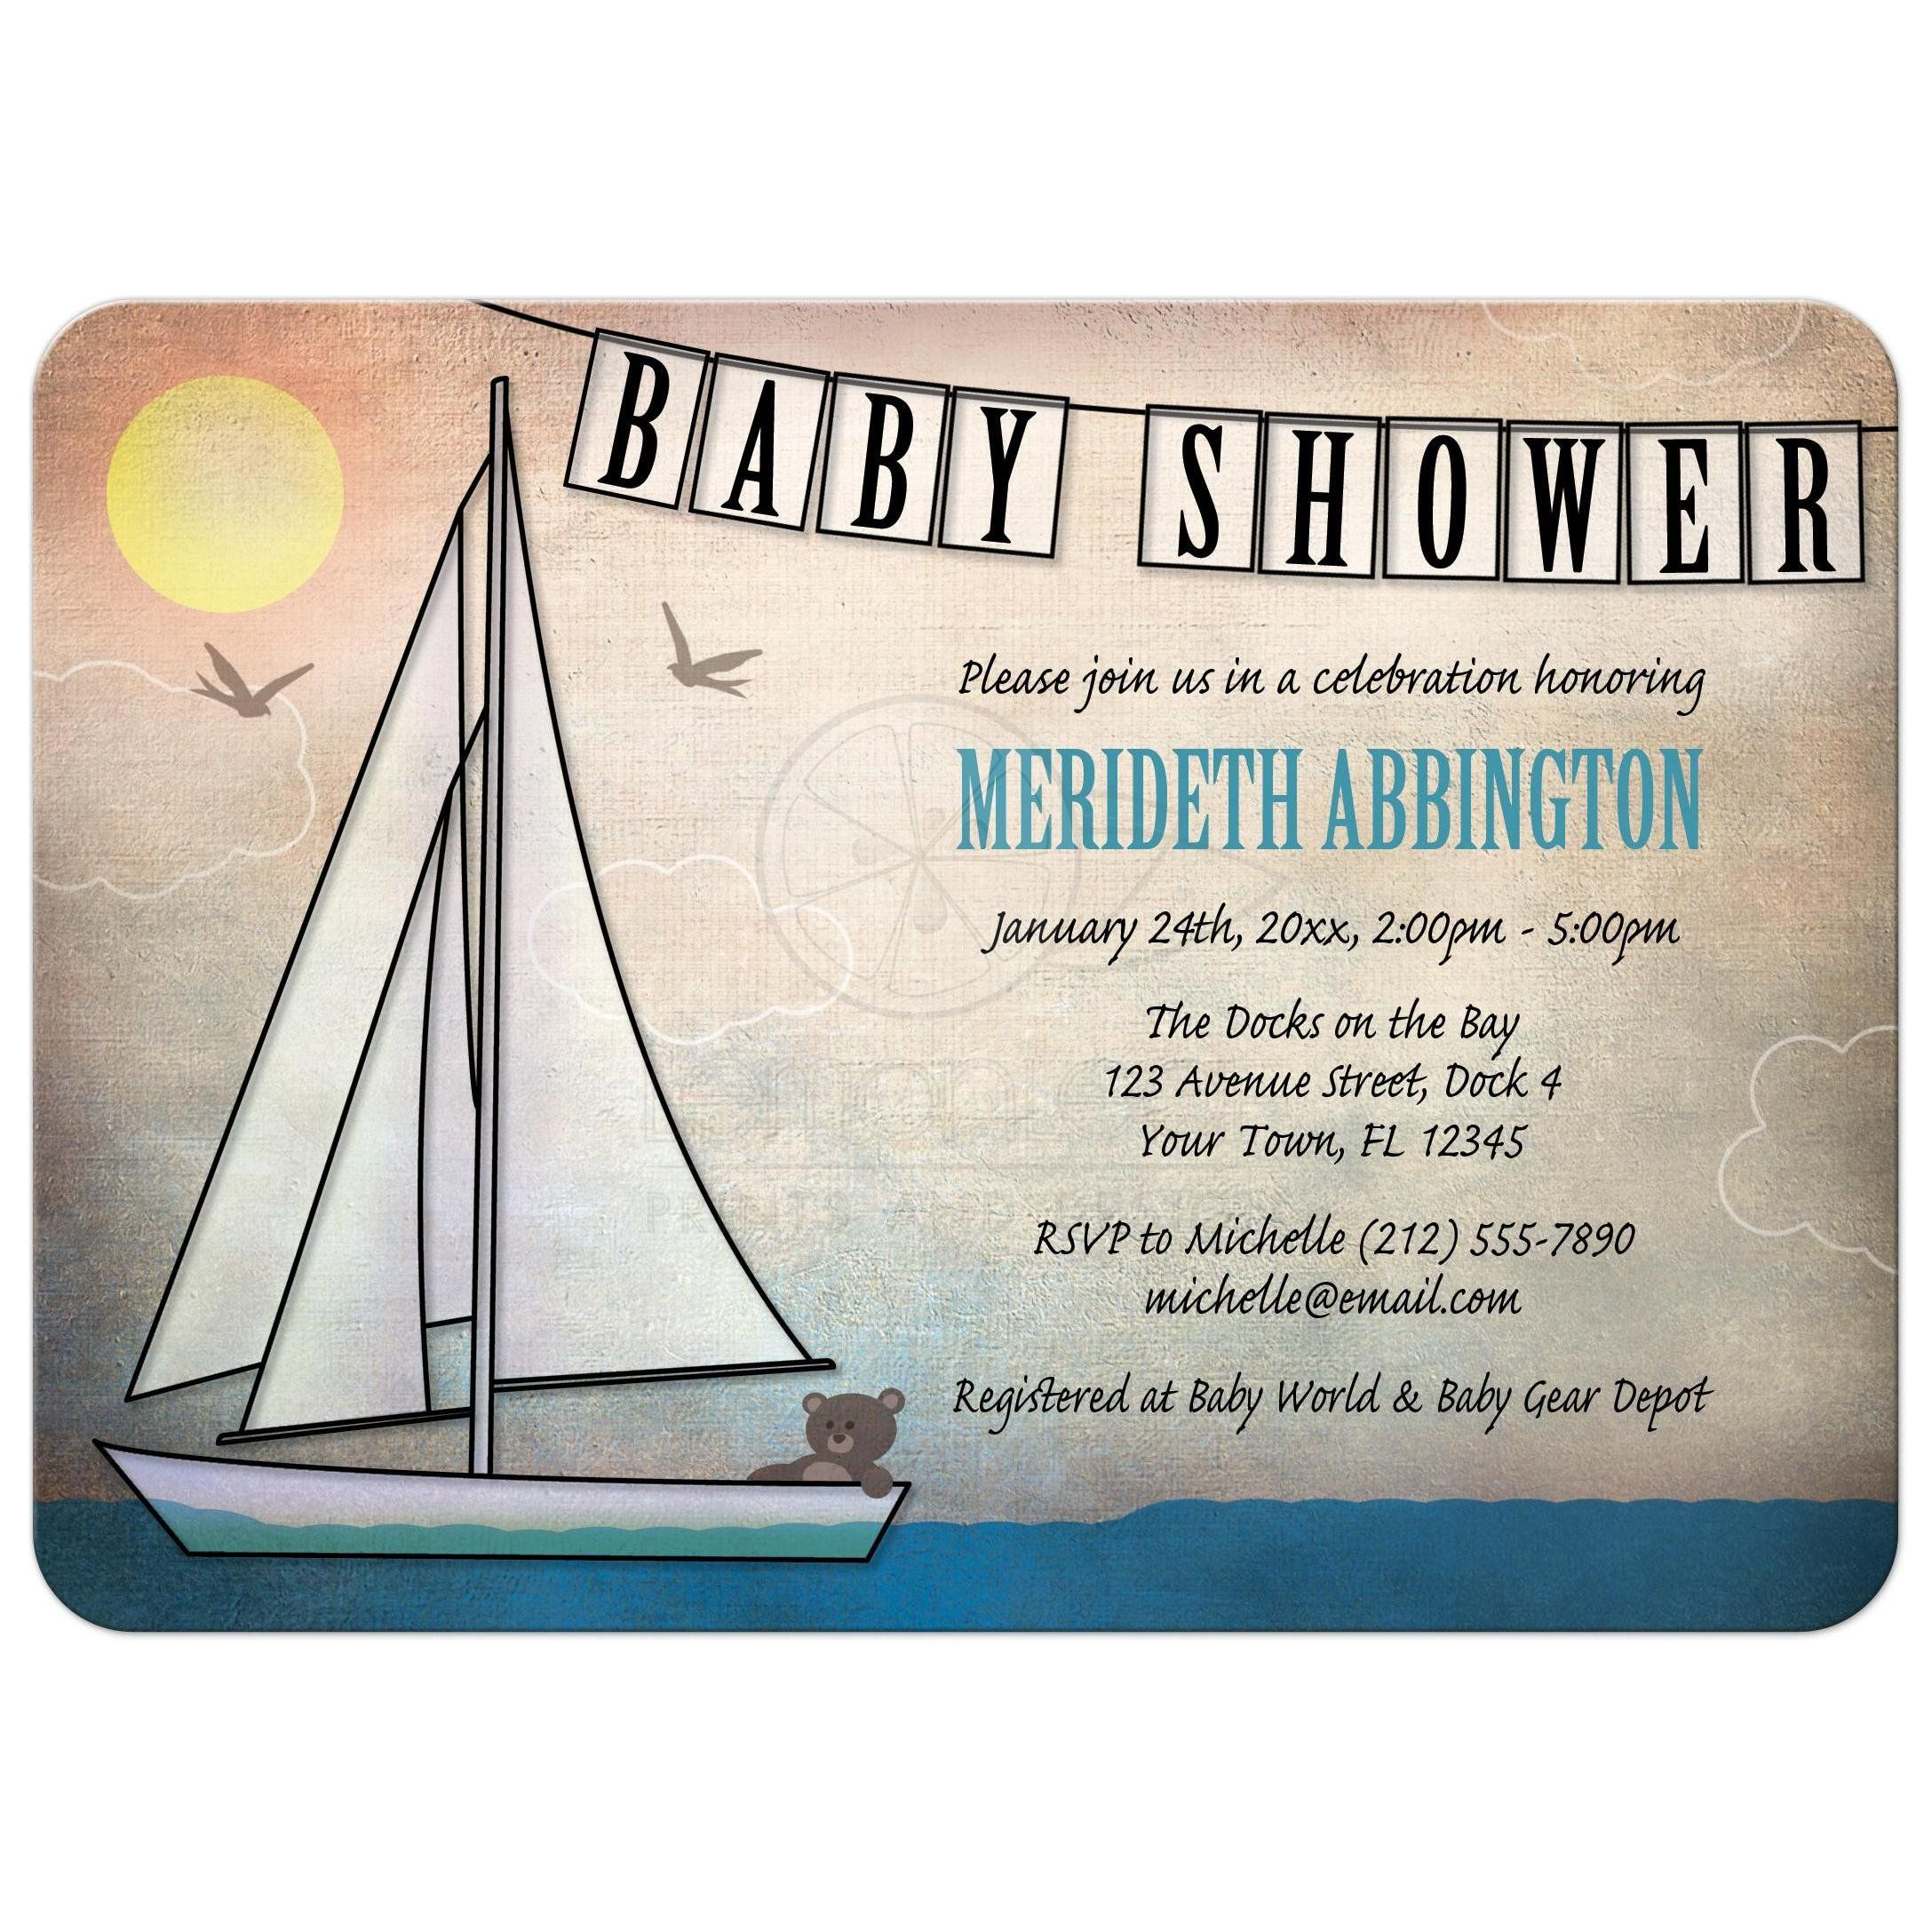 Baby Shower Invitations - Rustic Nautical Teddy Bear Sailboat ...